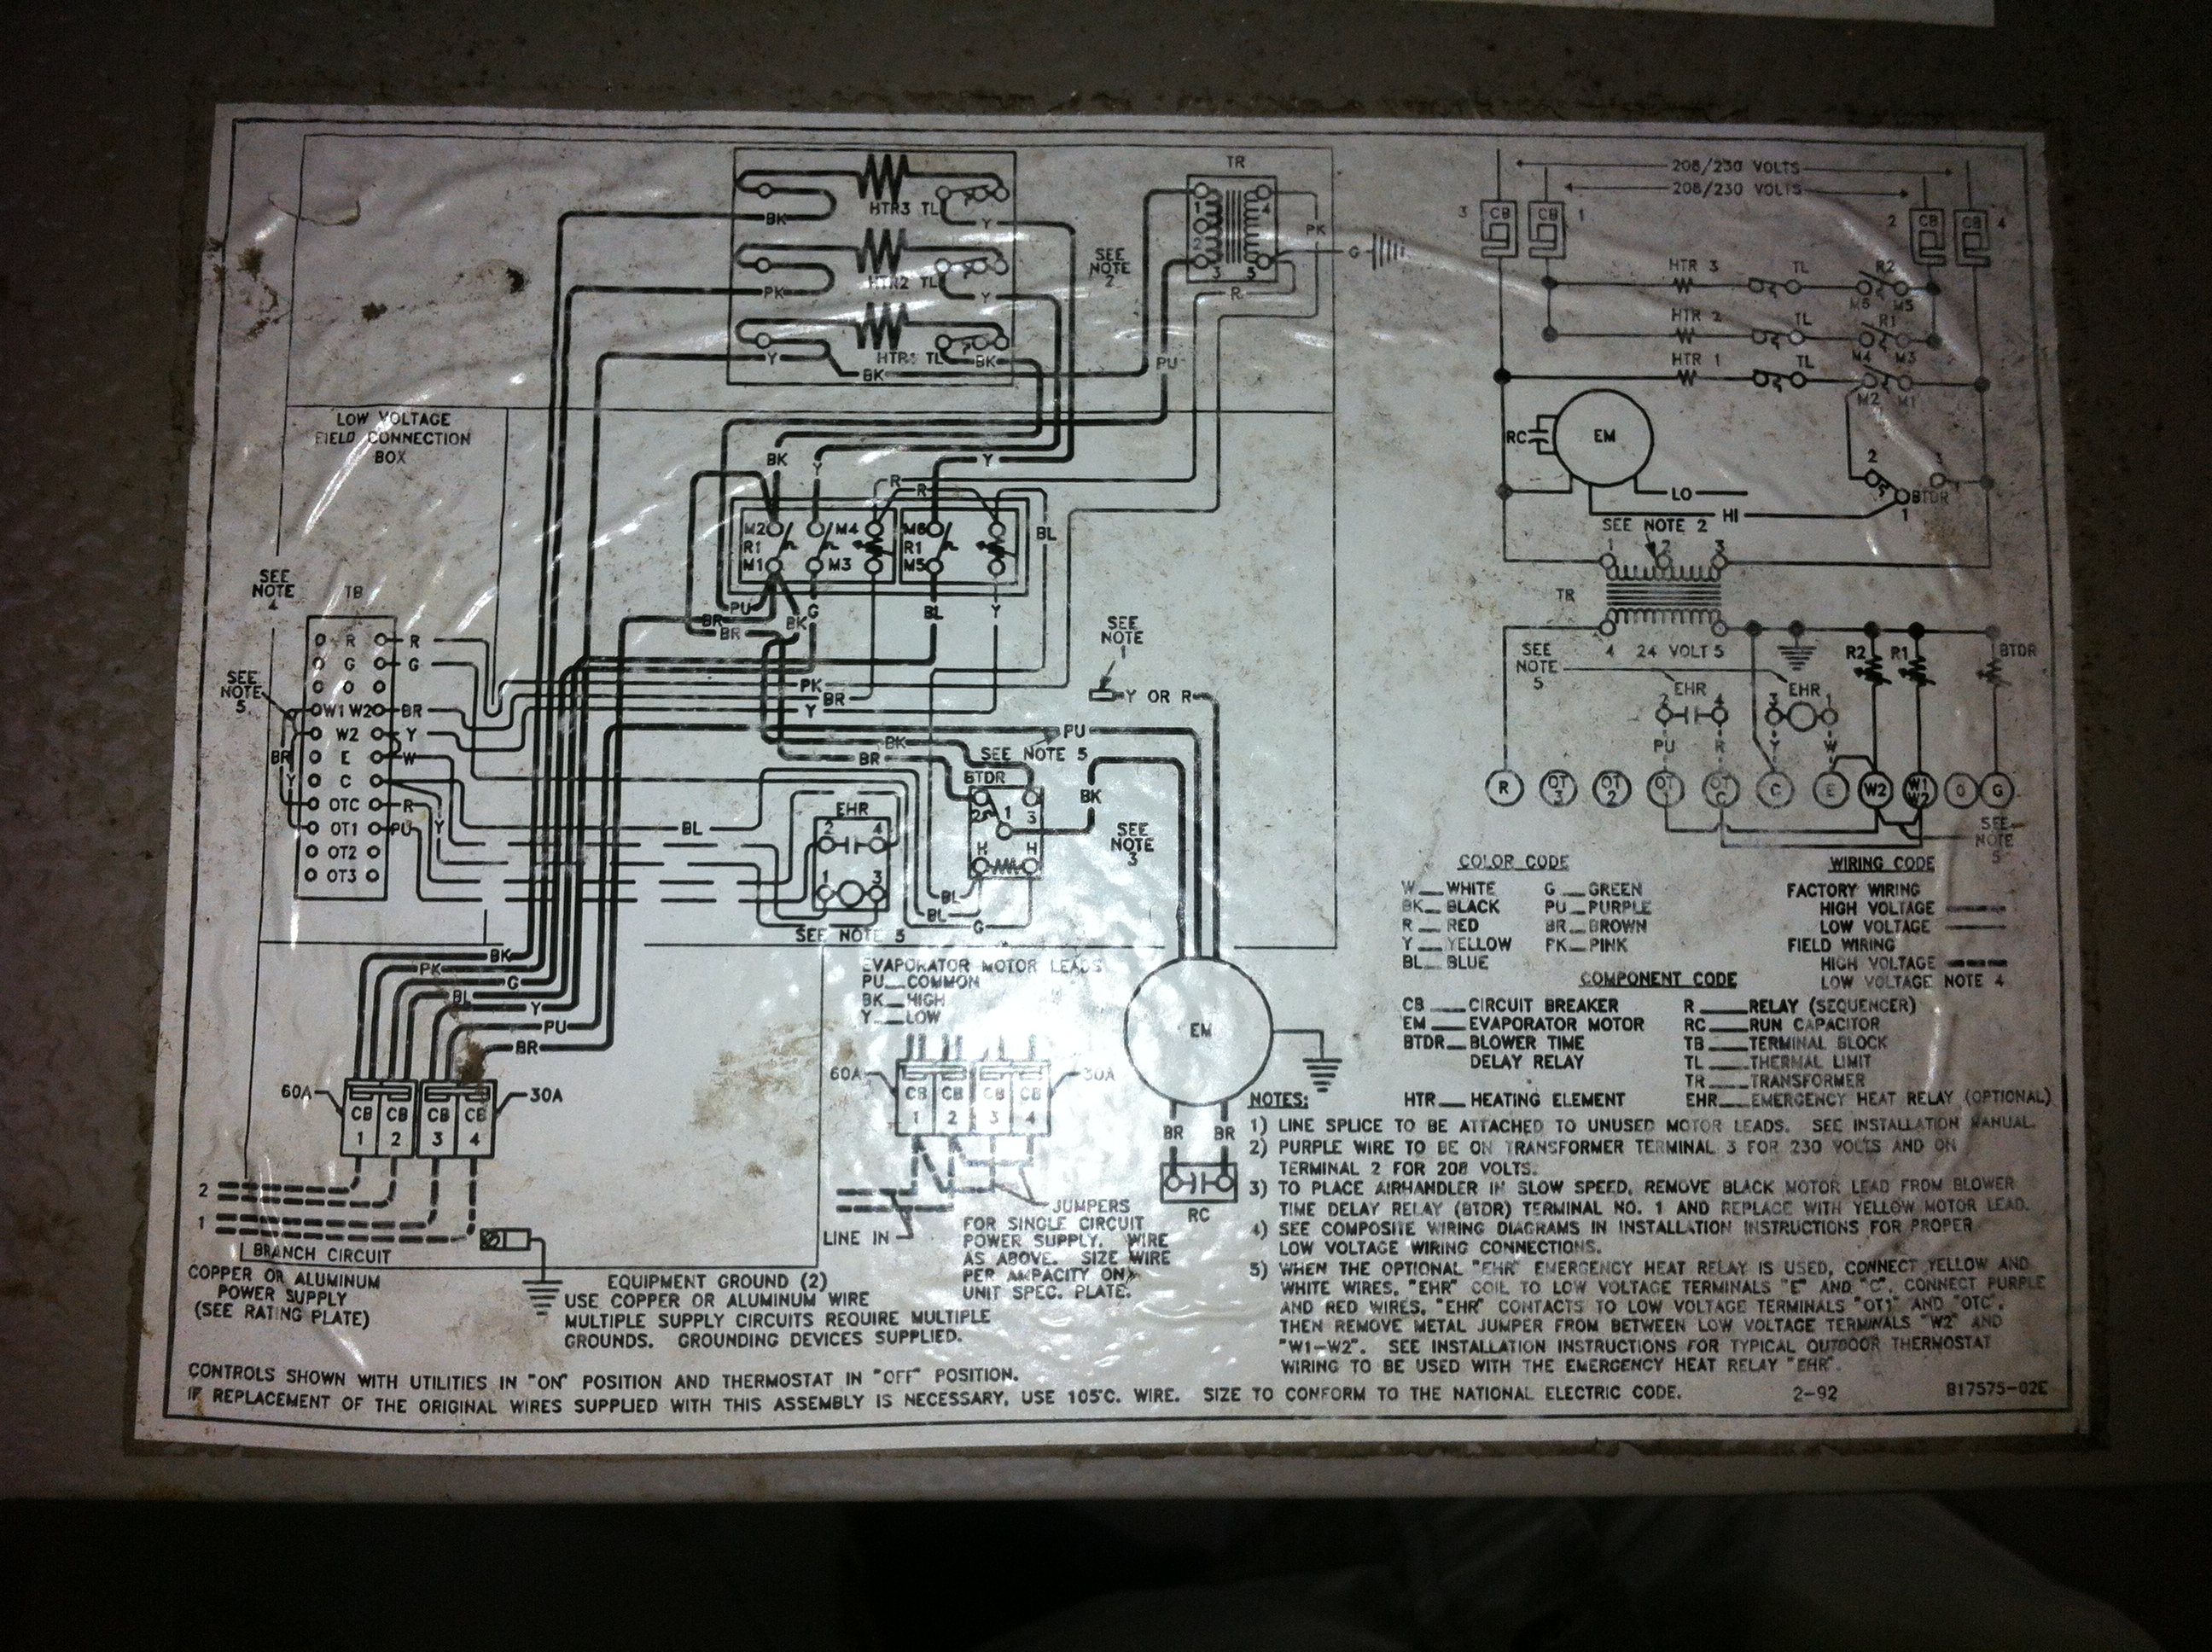 Air Handler Fan Relay Wiring Diagram 36 Images Thermostat Delay Timer Circuit Electronic Projects 2012 04 15 010529 Img 0035 For Goodman A36 10 Readingrat Net